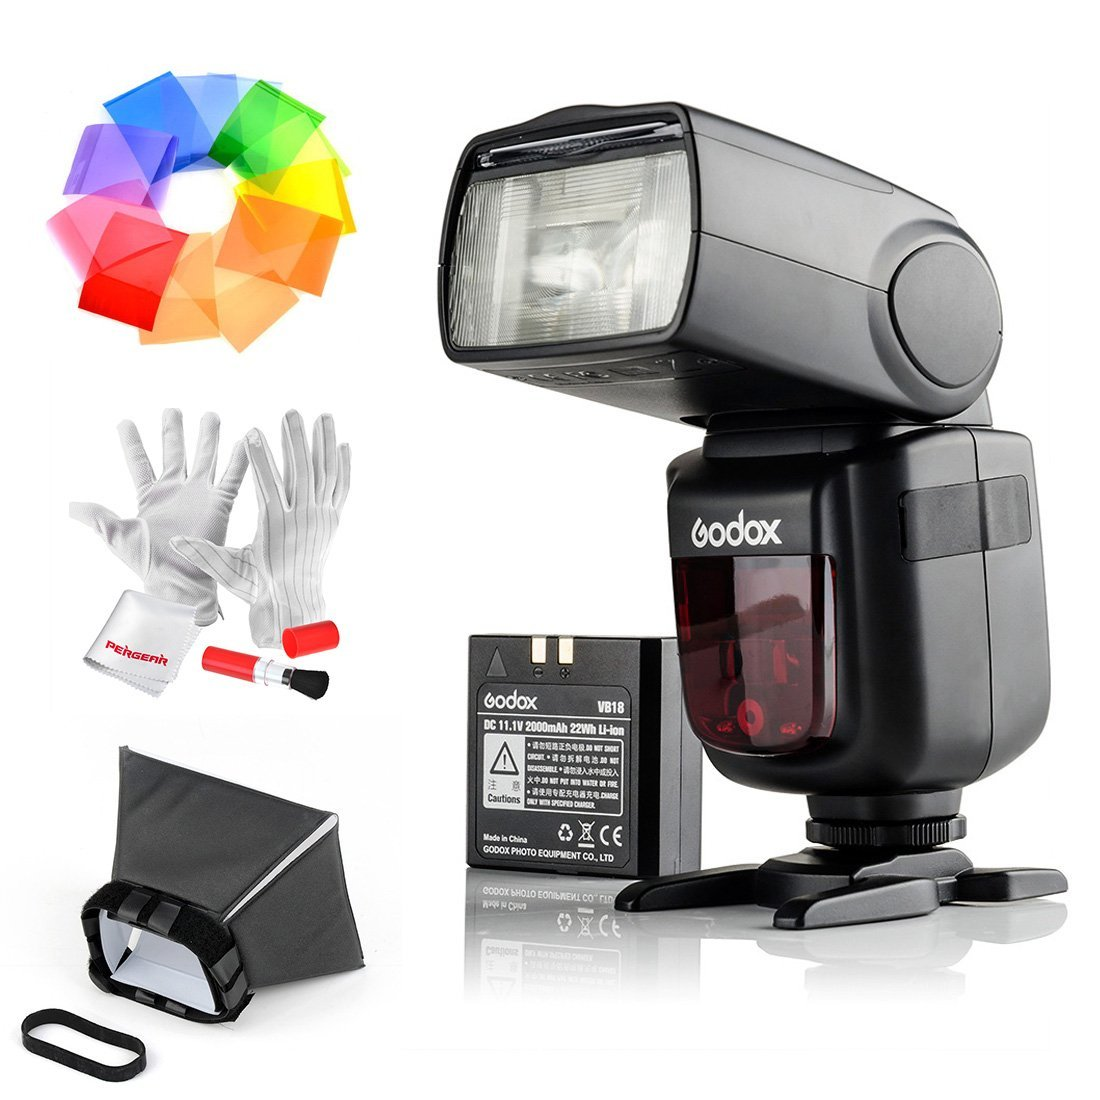 Godox Ving V860IIS 2.4G GN60 TTL HSS 1/8000s Li-on Battery Camera Flash Speedlite for Sony DSLR Cameras - 1.5S Recycle Time 650 Full Power Pops Supports TTL/M/Multi/S1/S2 by Godox